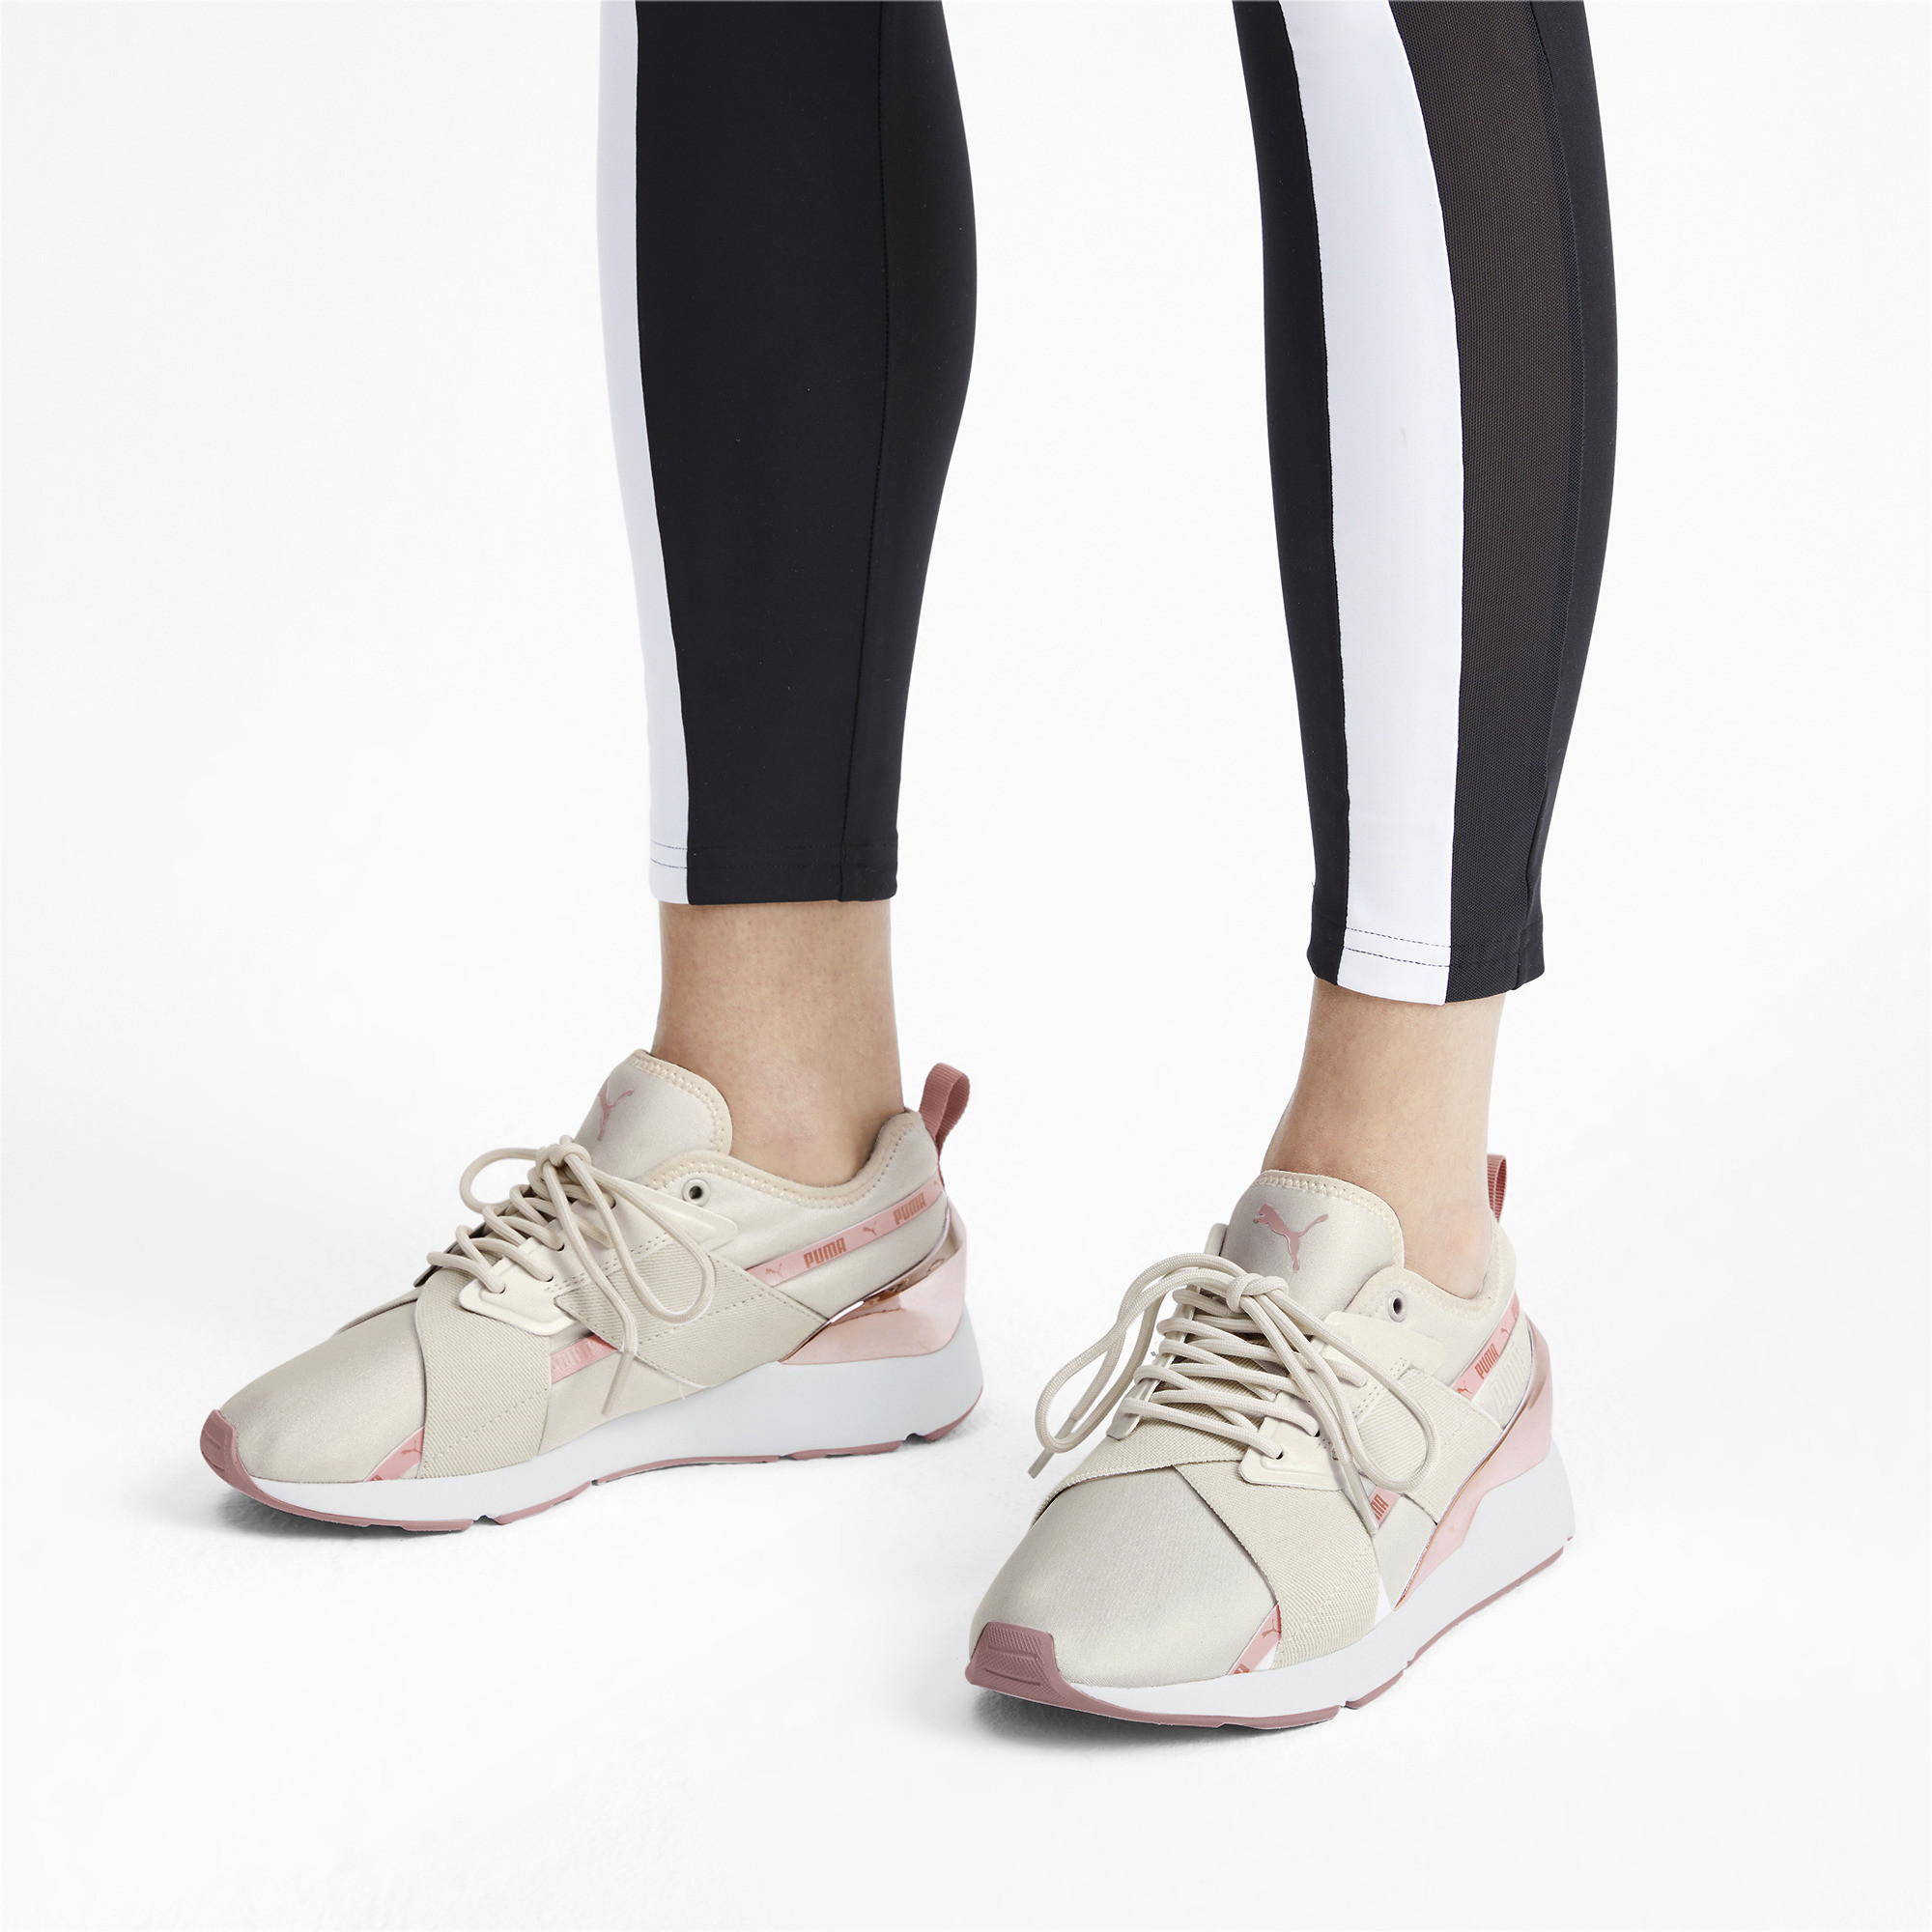 PUMA-Muse-X-2-Metallic-Women-039-s-Sneakers-Women-Shoe-Evolution thumbnail 12